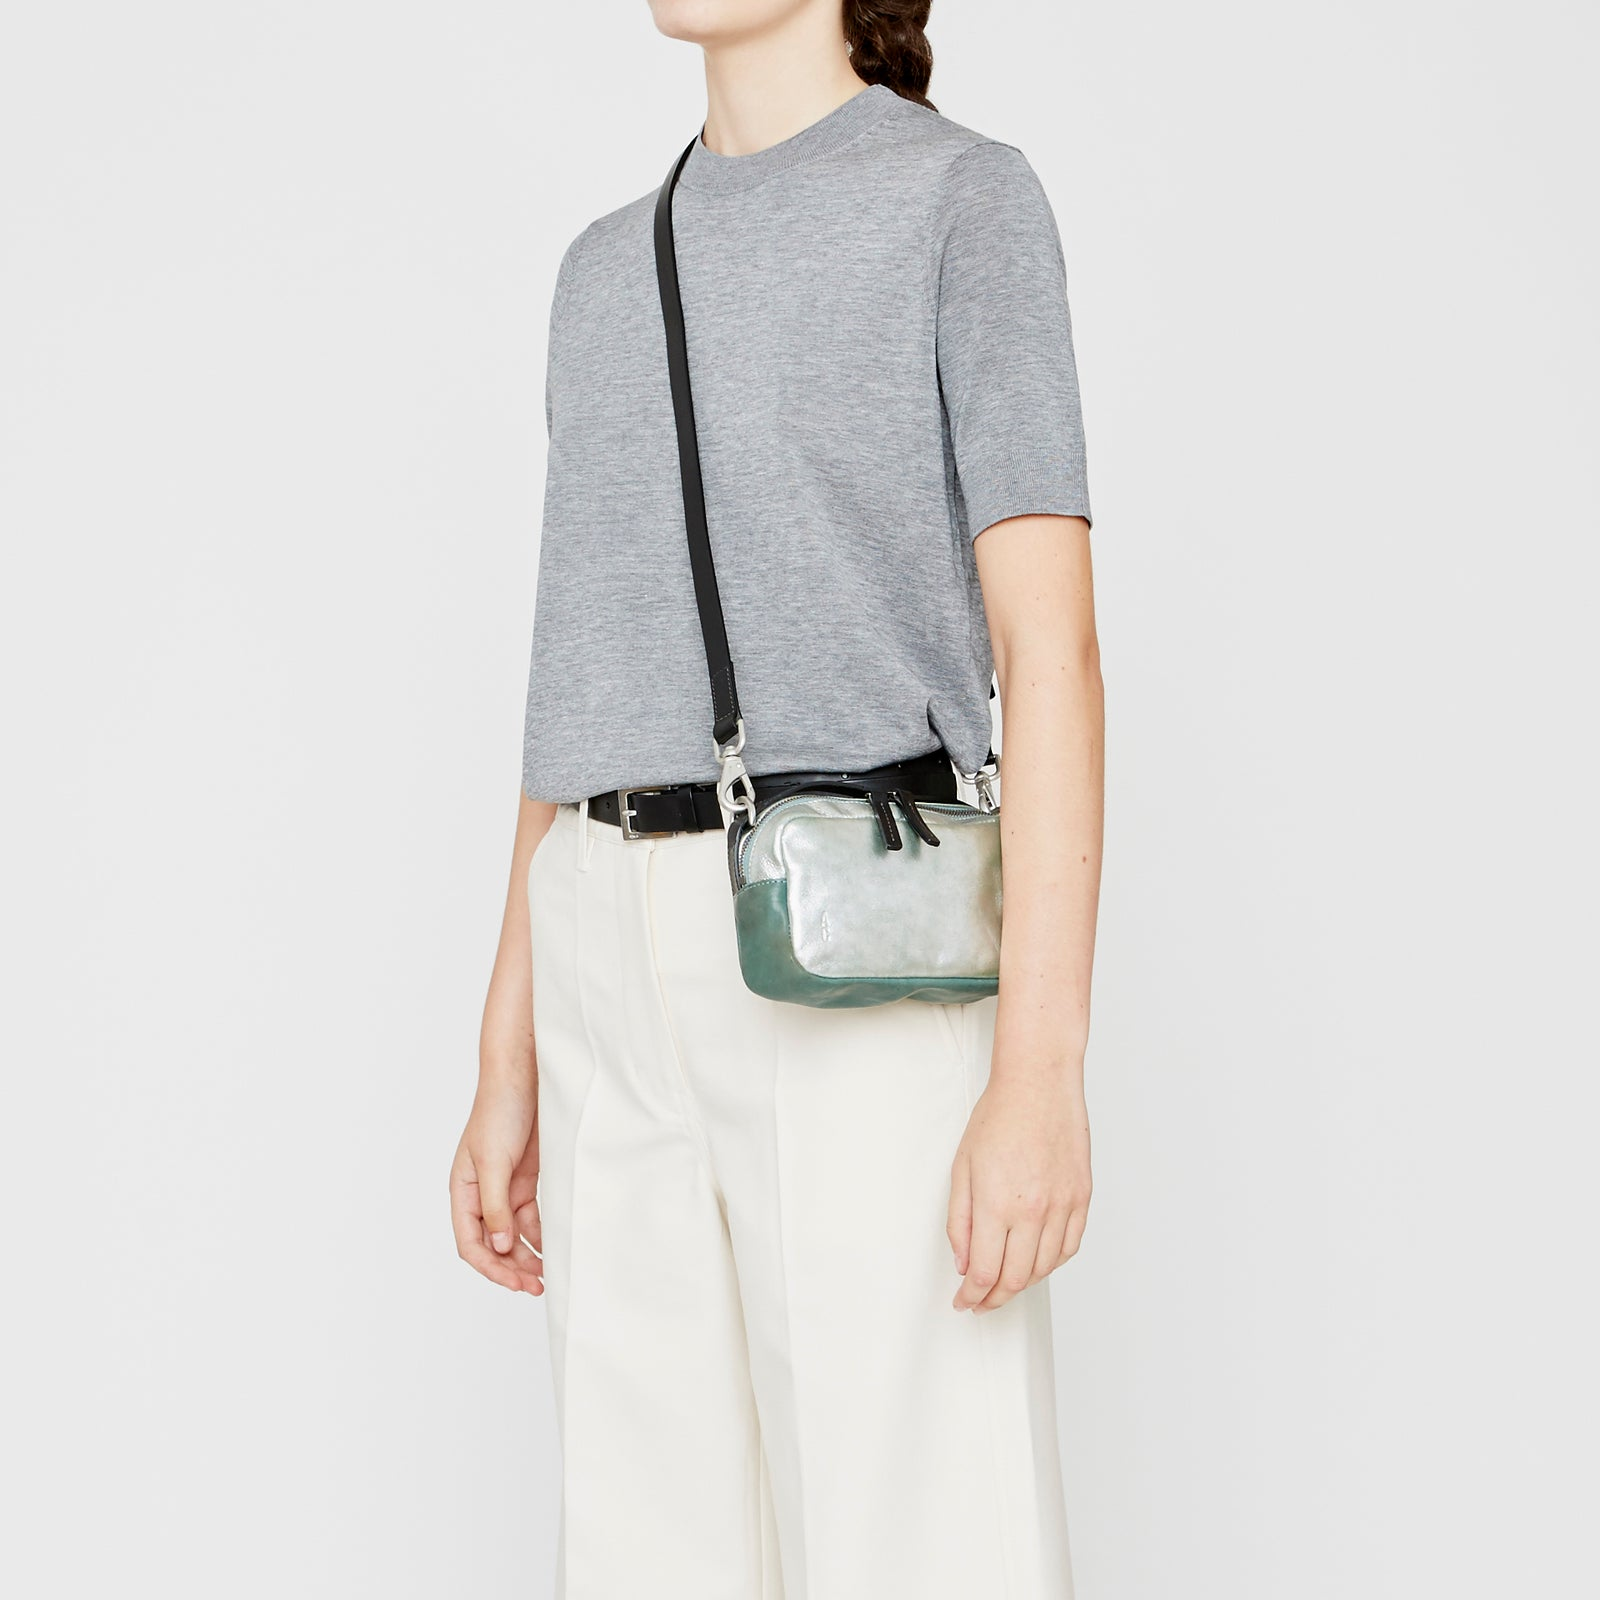 ... Ally Capellino, Leather, Shoulder bag, leather, mint, green, bag, ... fbdbcad8cb